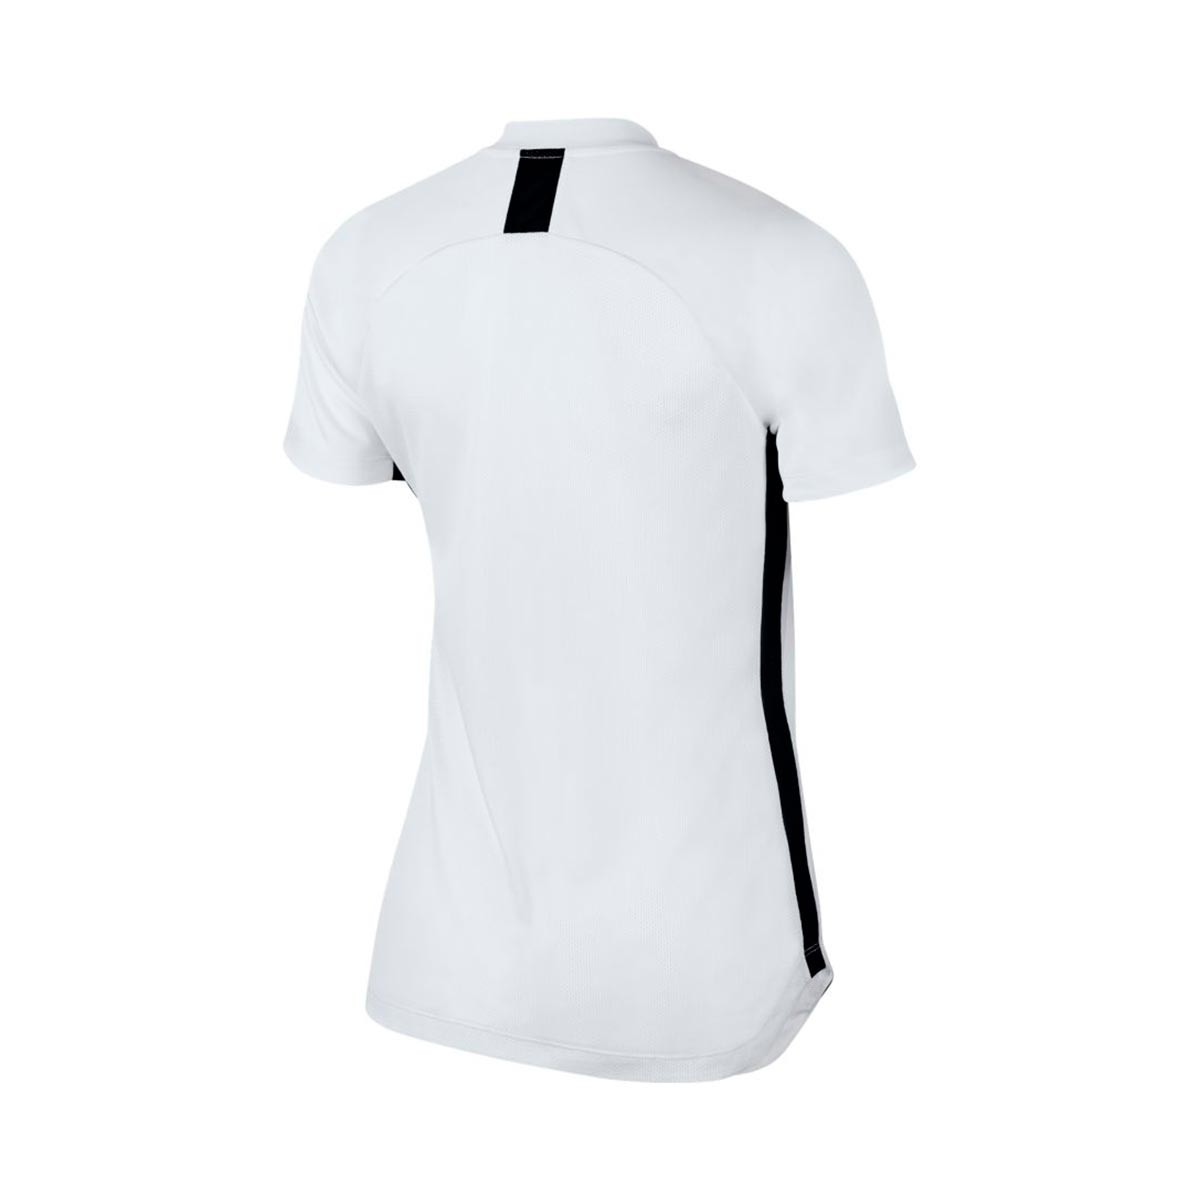 830438ee94f Camiseta Dri-FIT Academy Mujer White-Black